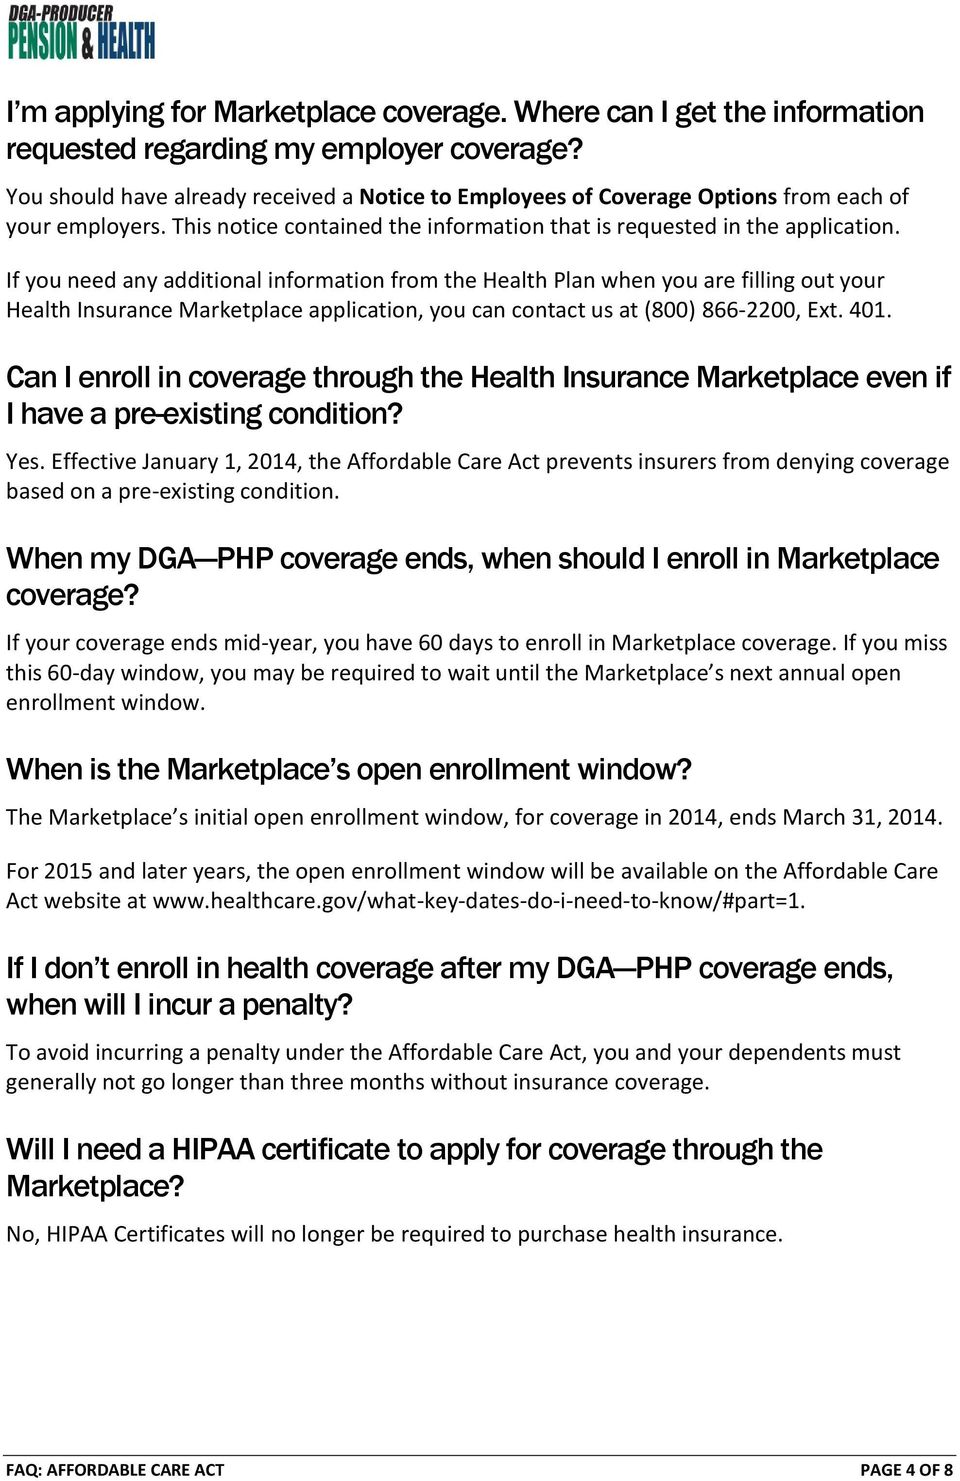 If you need any additional information from the Health Plan when you are filling out your Health Insurance Marketplace application, you can contact us at (800) 866-2200, Ext. 401.